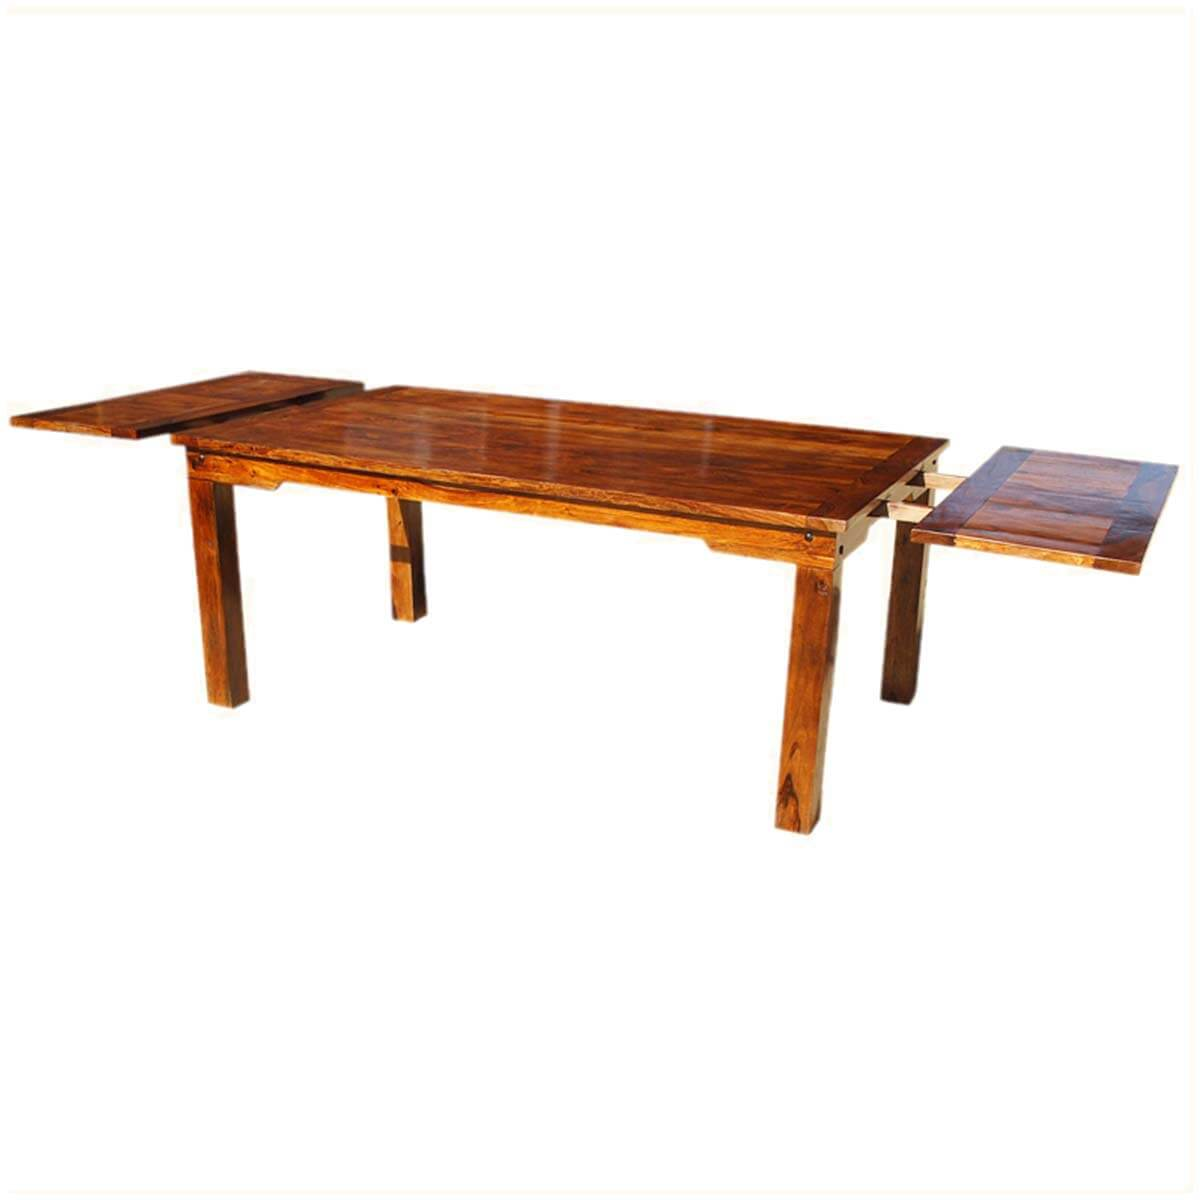 Solid wood transitional rustic dining table w extensions for Hardwood dining table